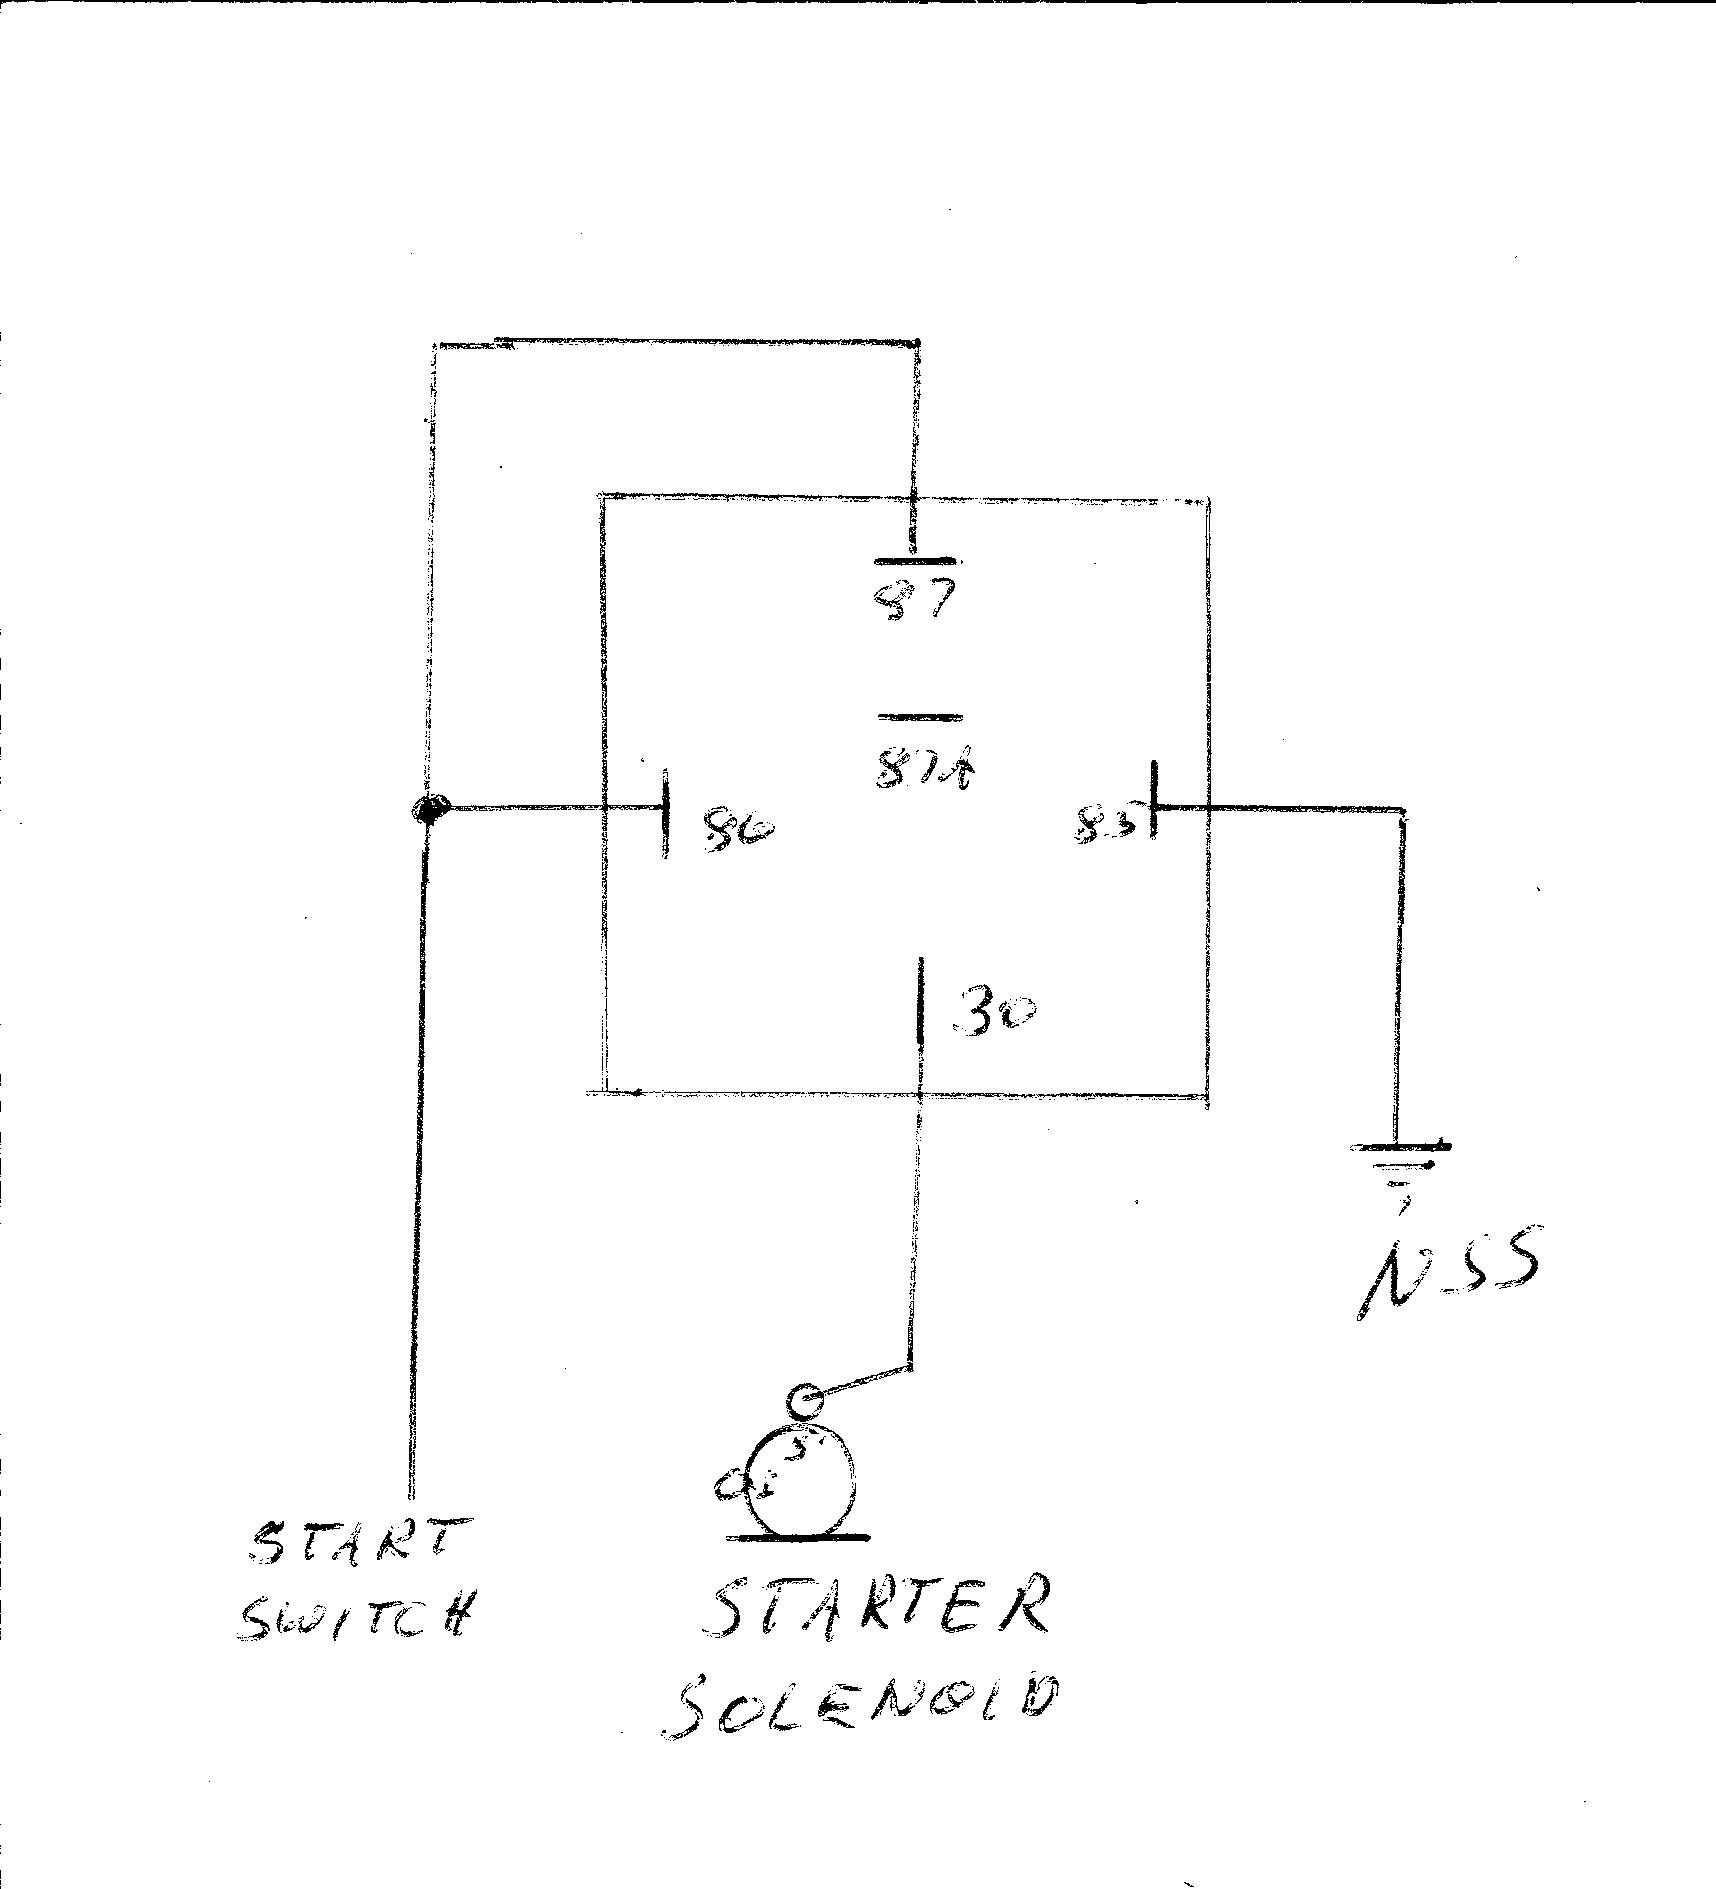 Mopar Starter Relay Wiring Diagram 34 Images Ford 7784751 Isostarter Adapting A To Solenoid Moparts